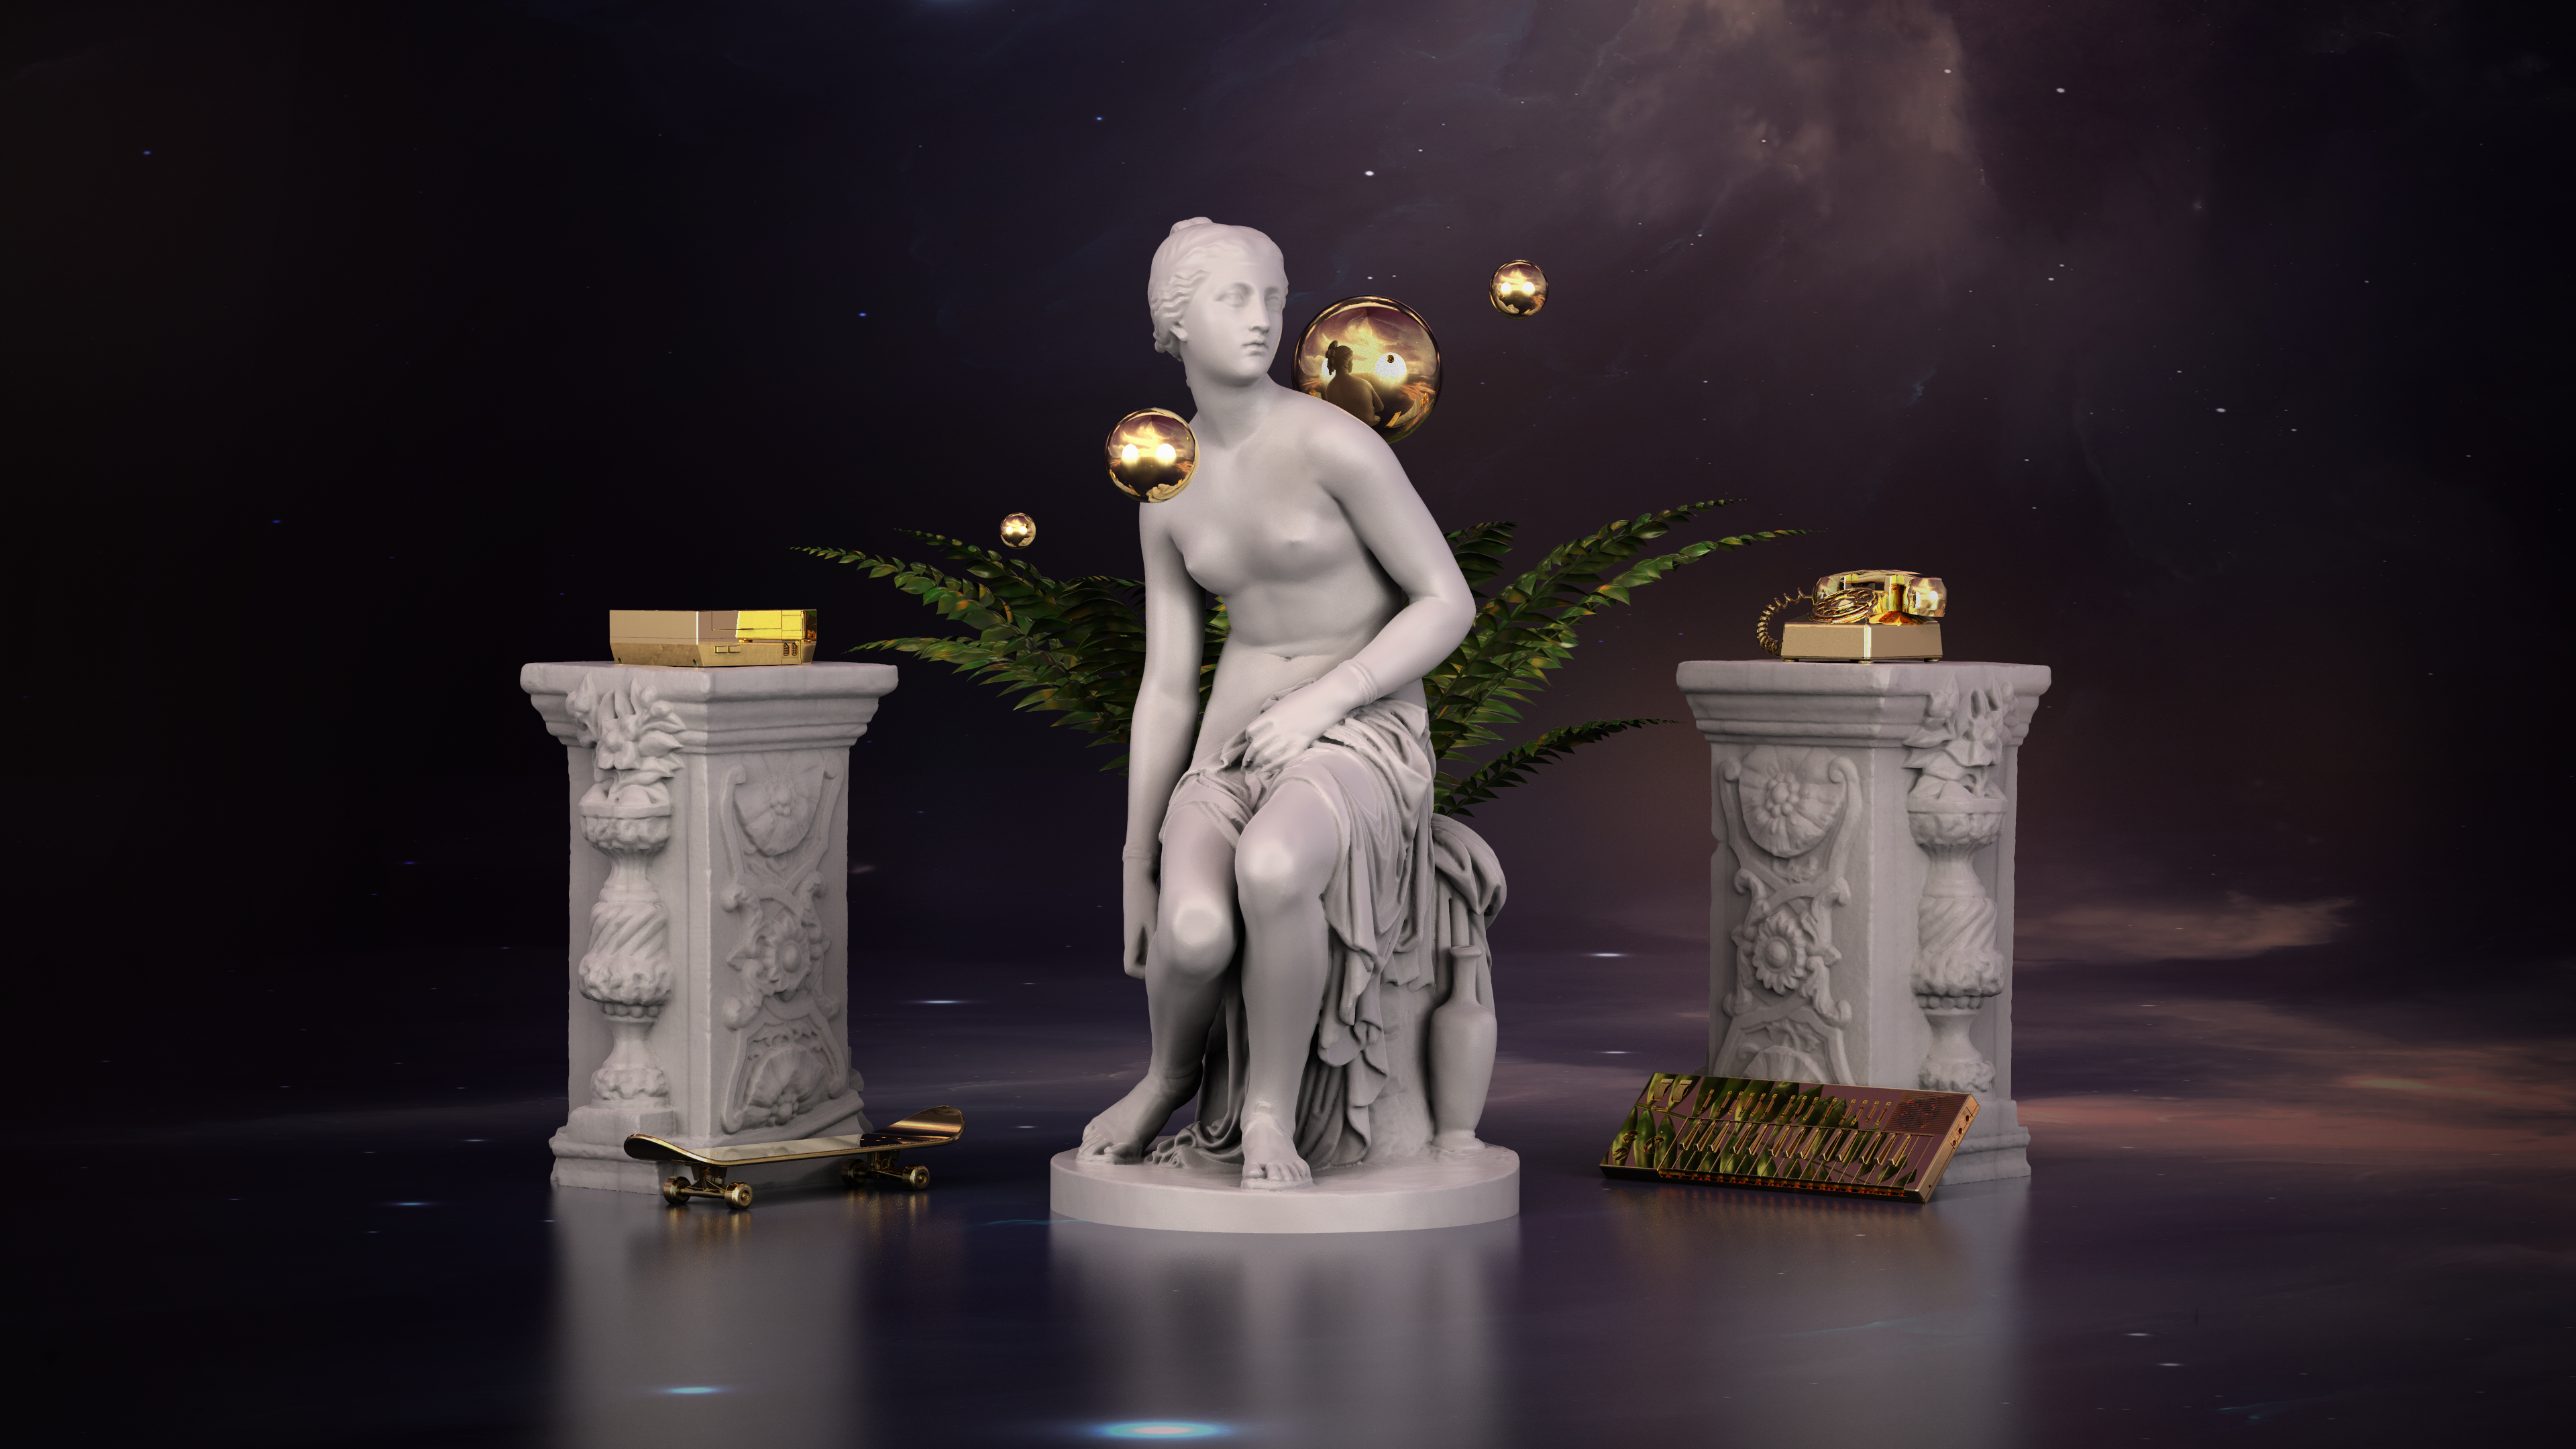 General 3840x2160 3D space marble gold Nintendo Entertainment System skateboard piano Synth phone statue ferns